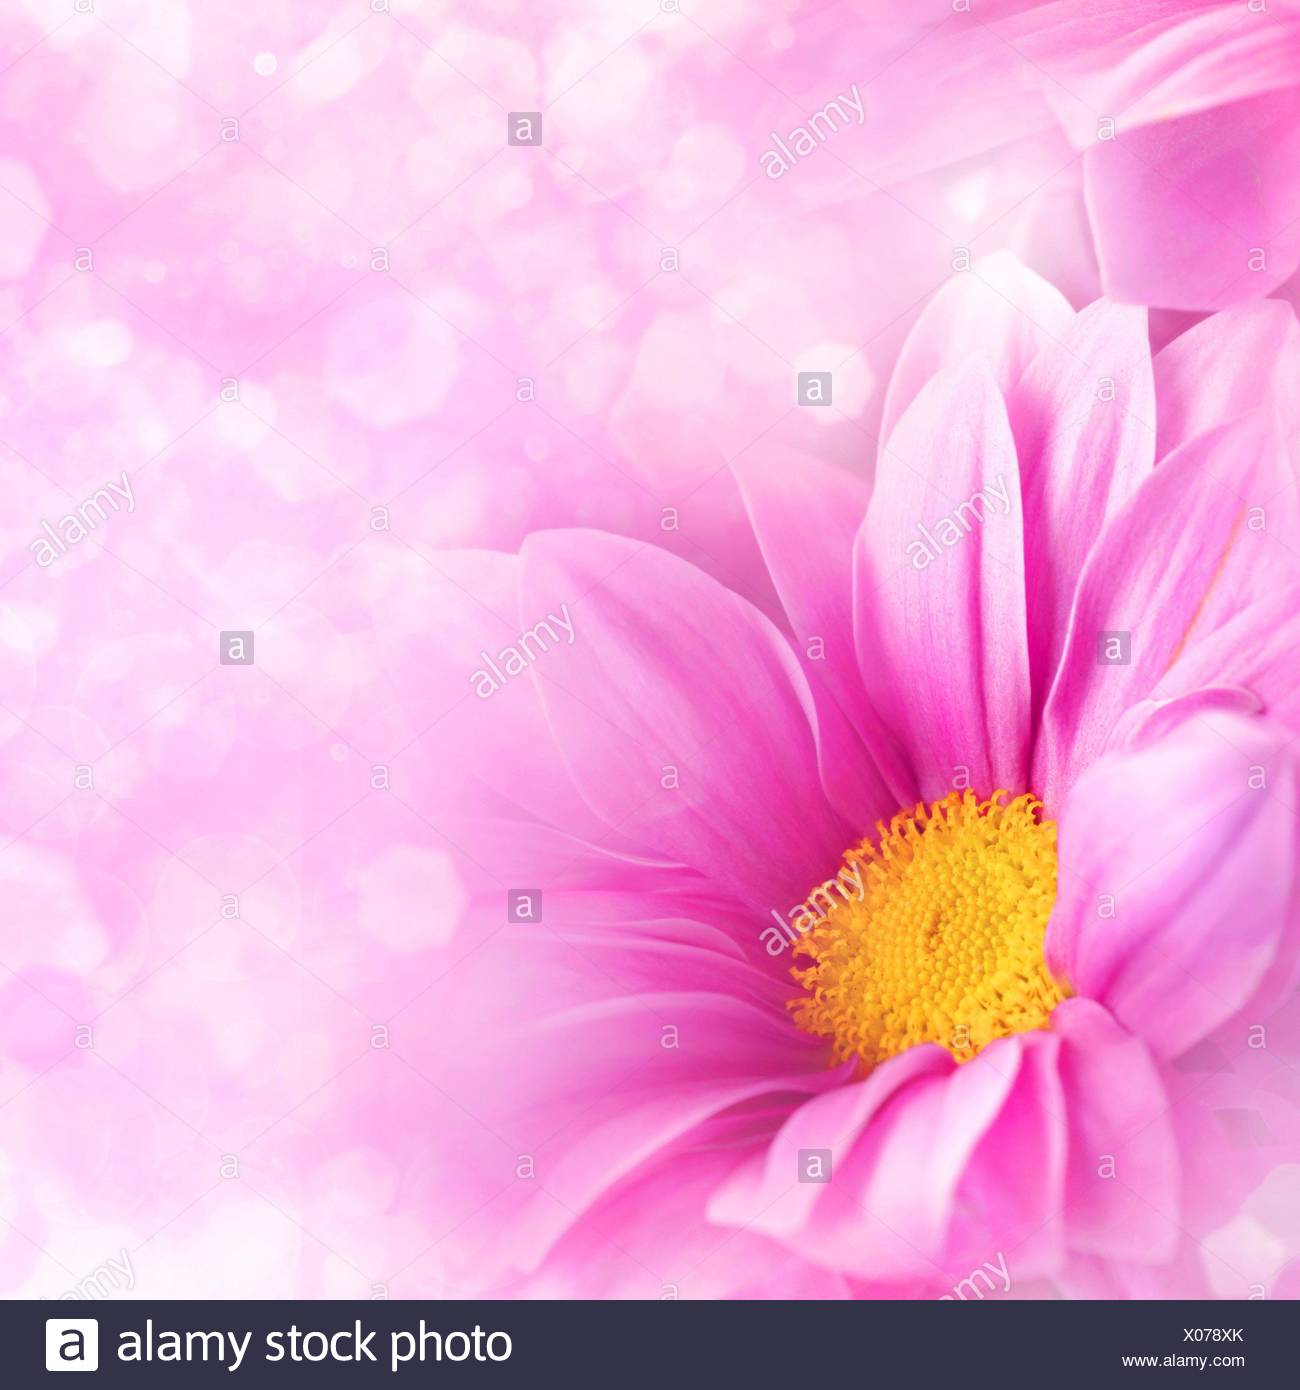 Abstract Floral Backgrounds For Your Design Stock Photo 275526571